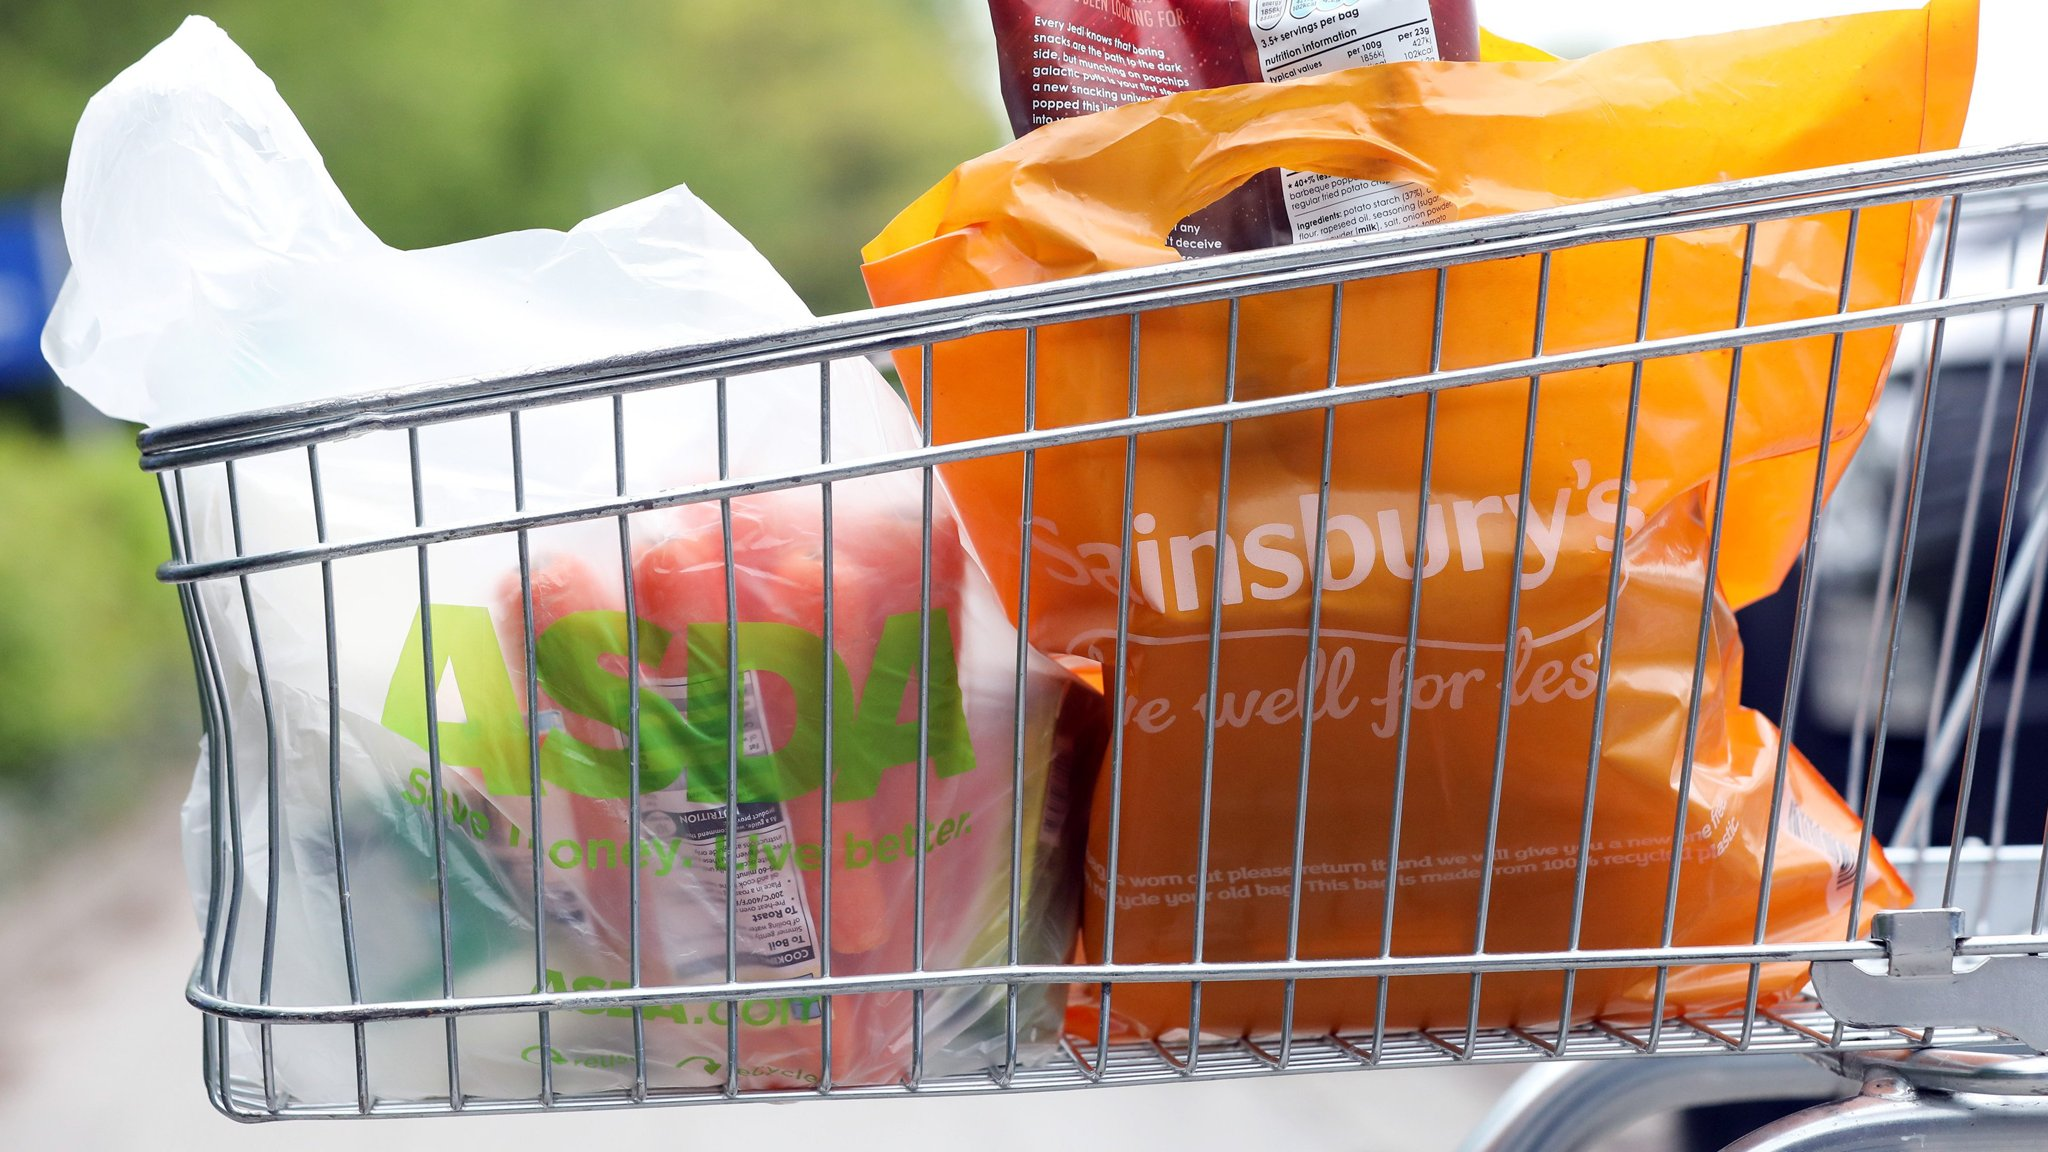 Sainsburys Asda Deal Poses Competition Risk Financial Times